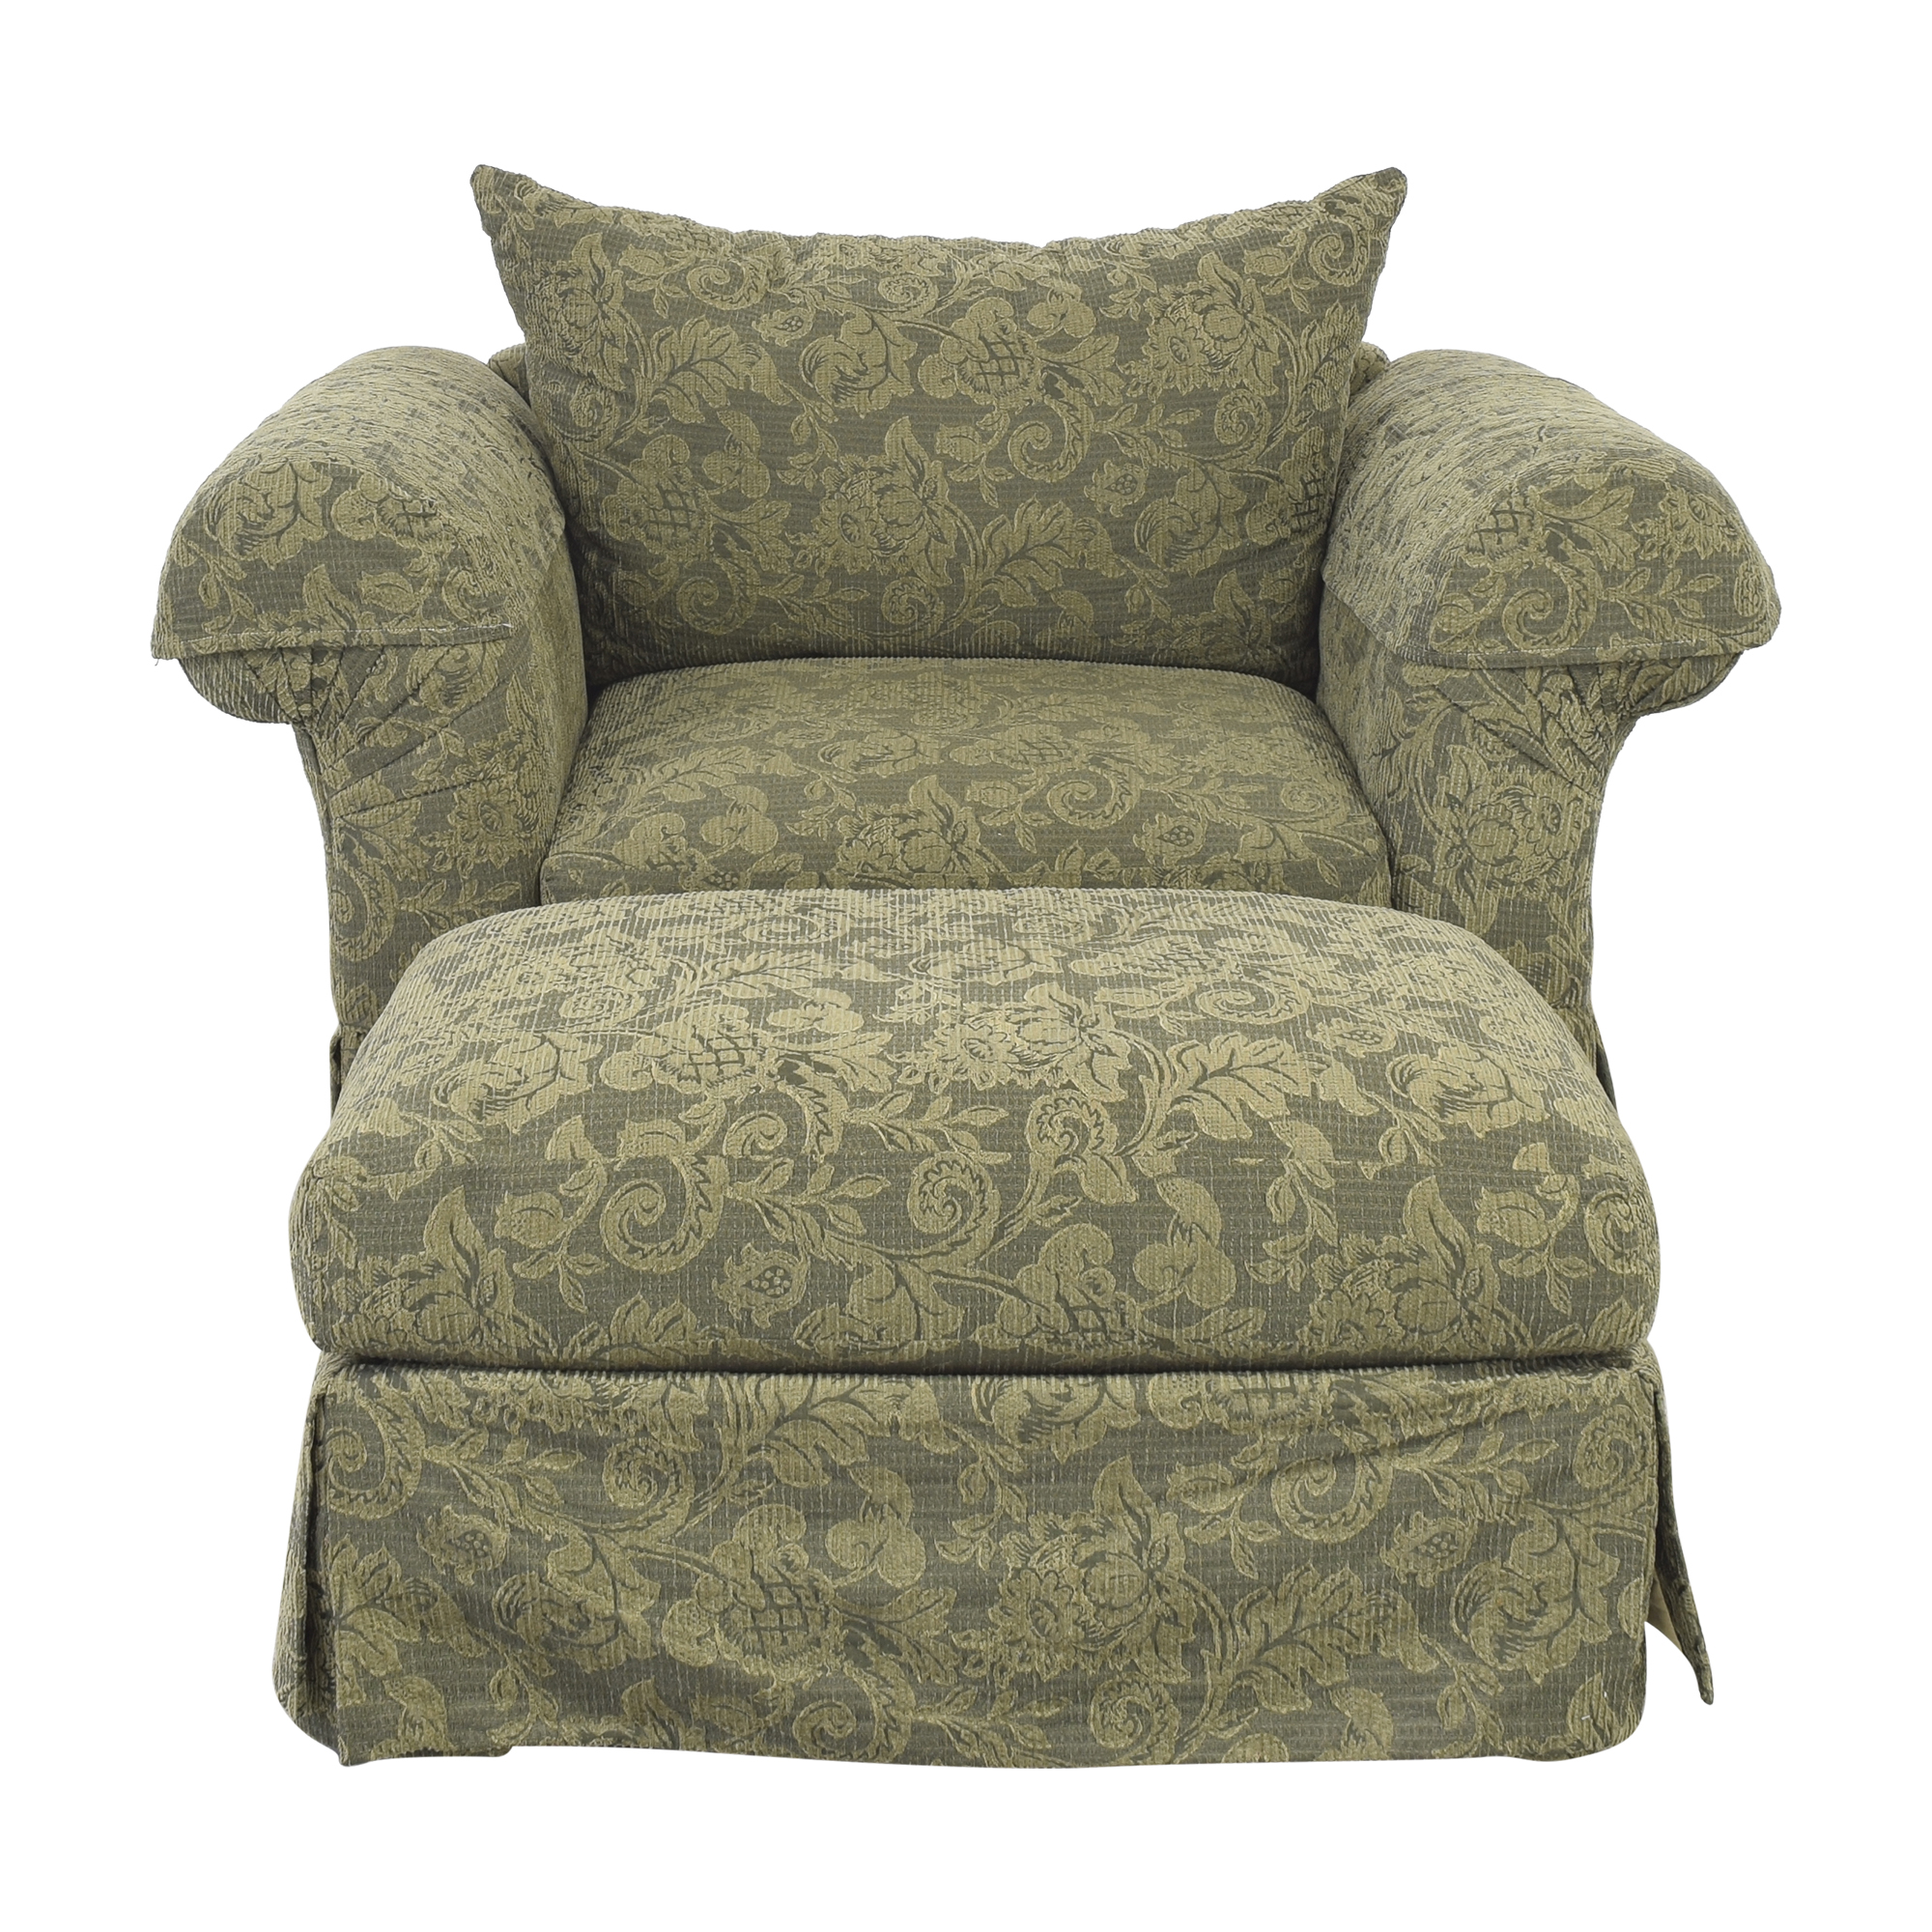 Rowe Furniture Rowe Furniture Lodge Chair with Ottoman for sale